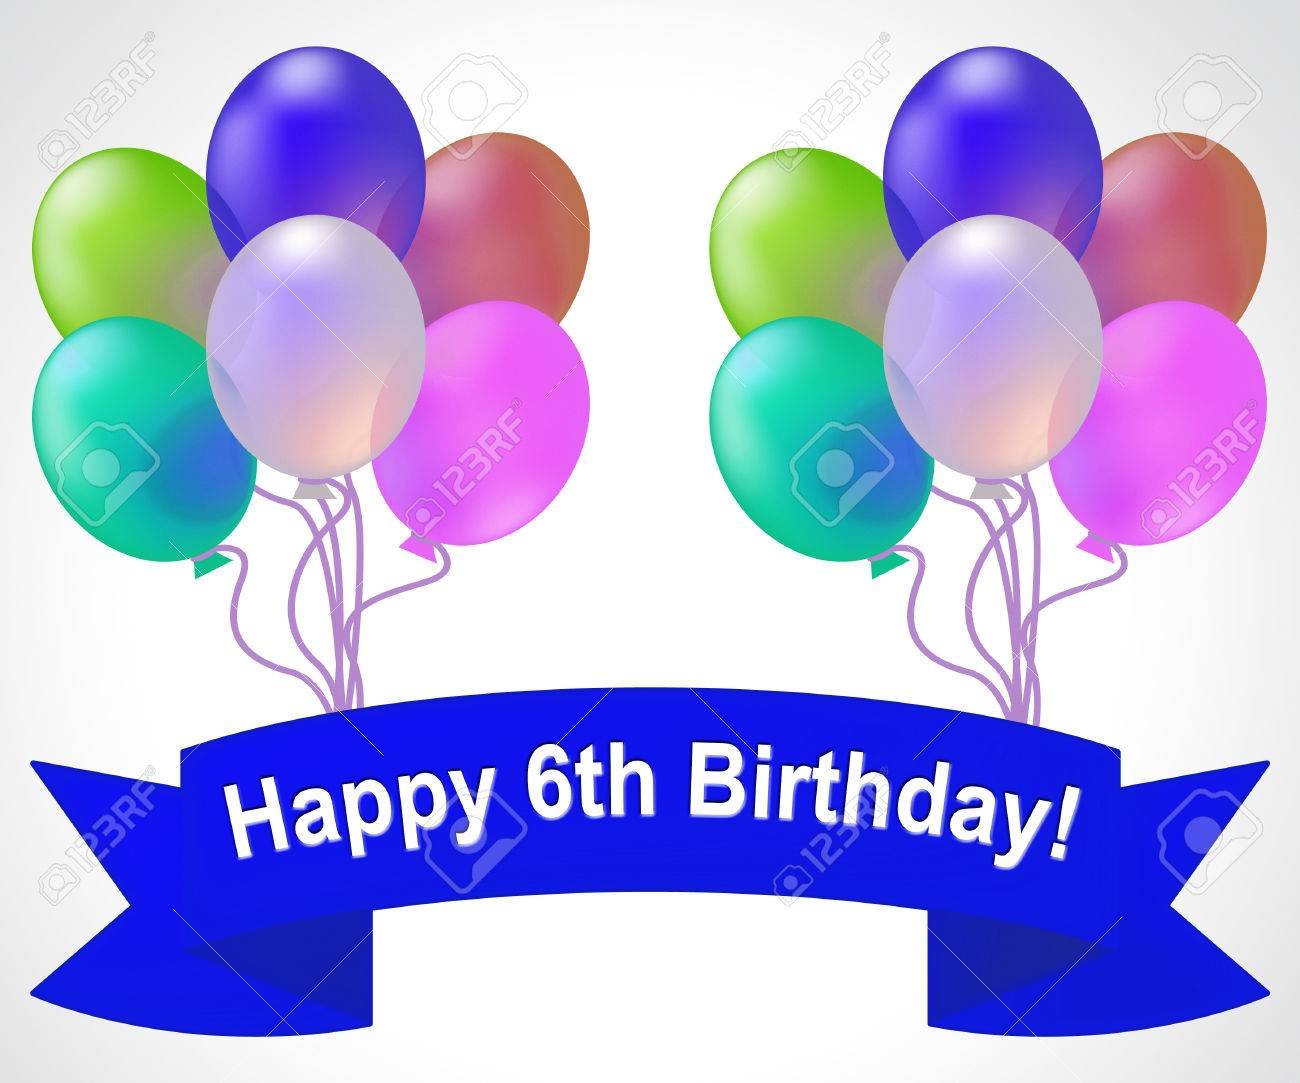 Happy Sixth Birthday Balloons Means 6th Party Celebration 3d Illustration Stock